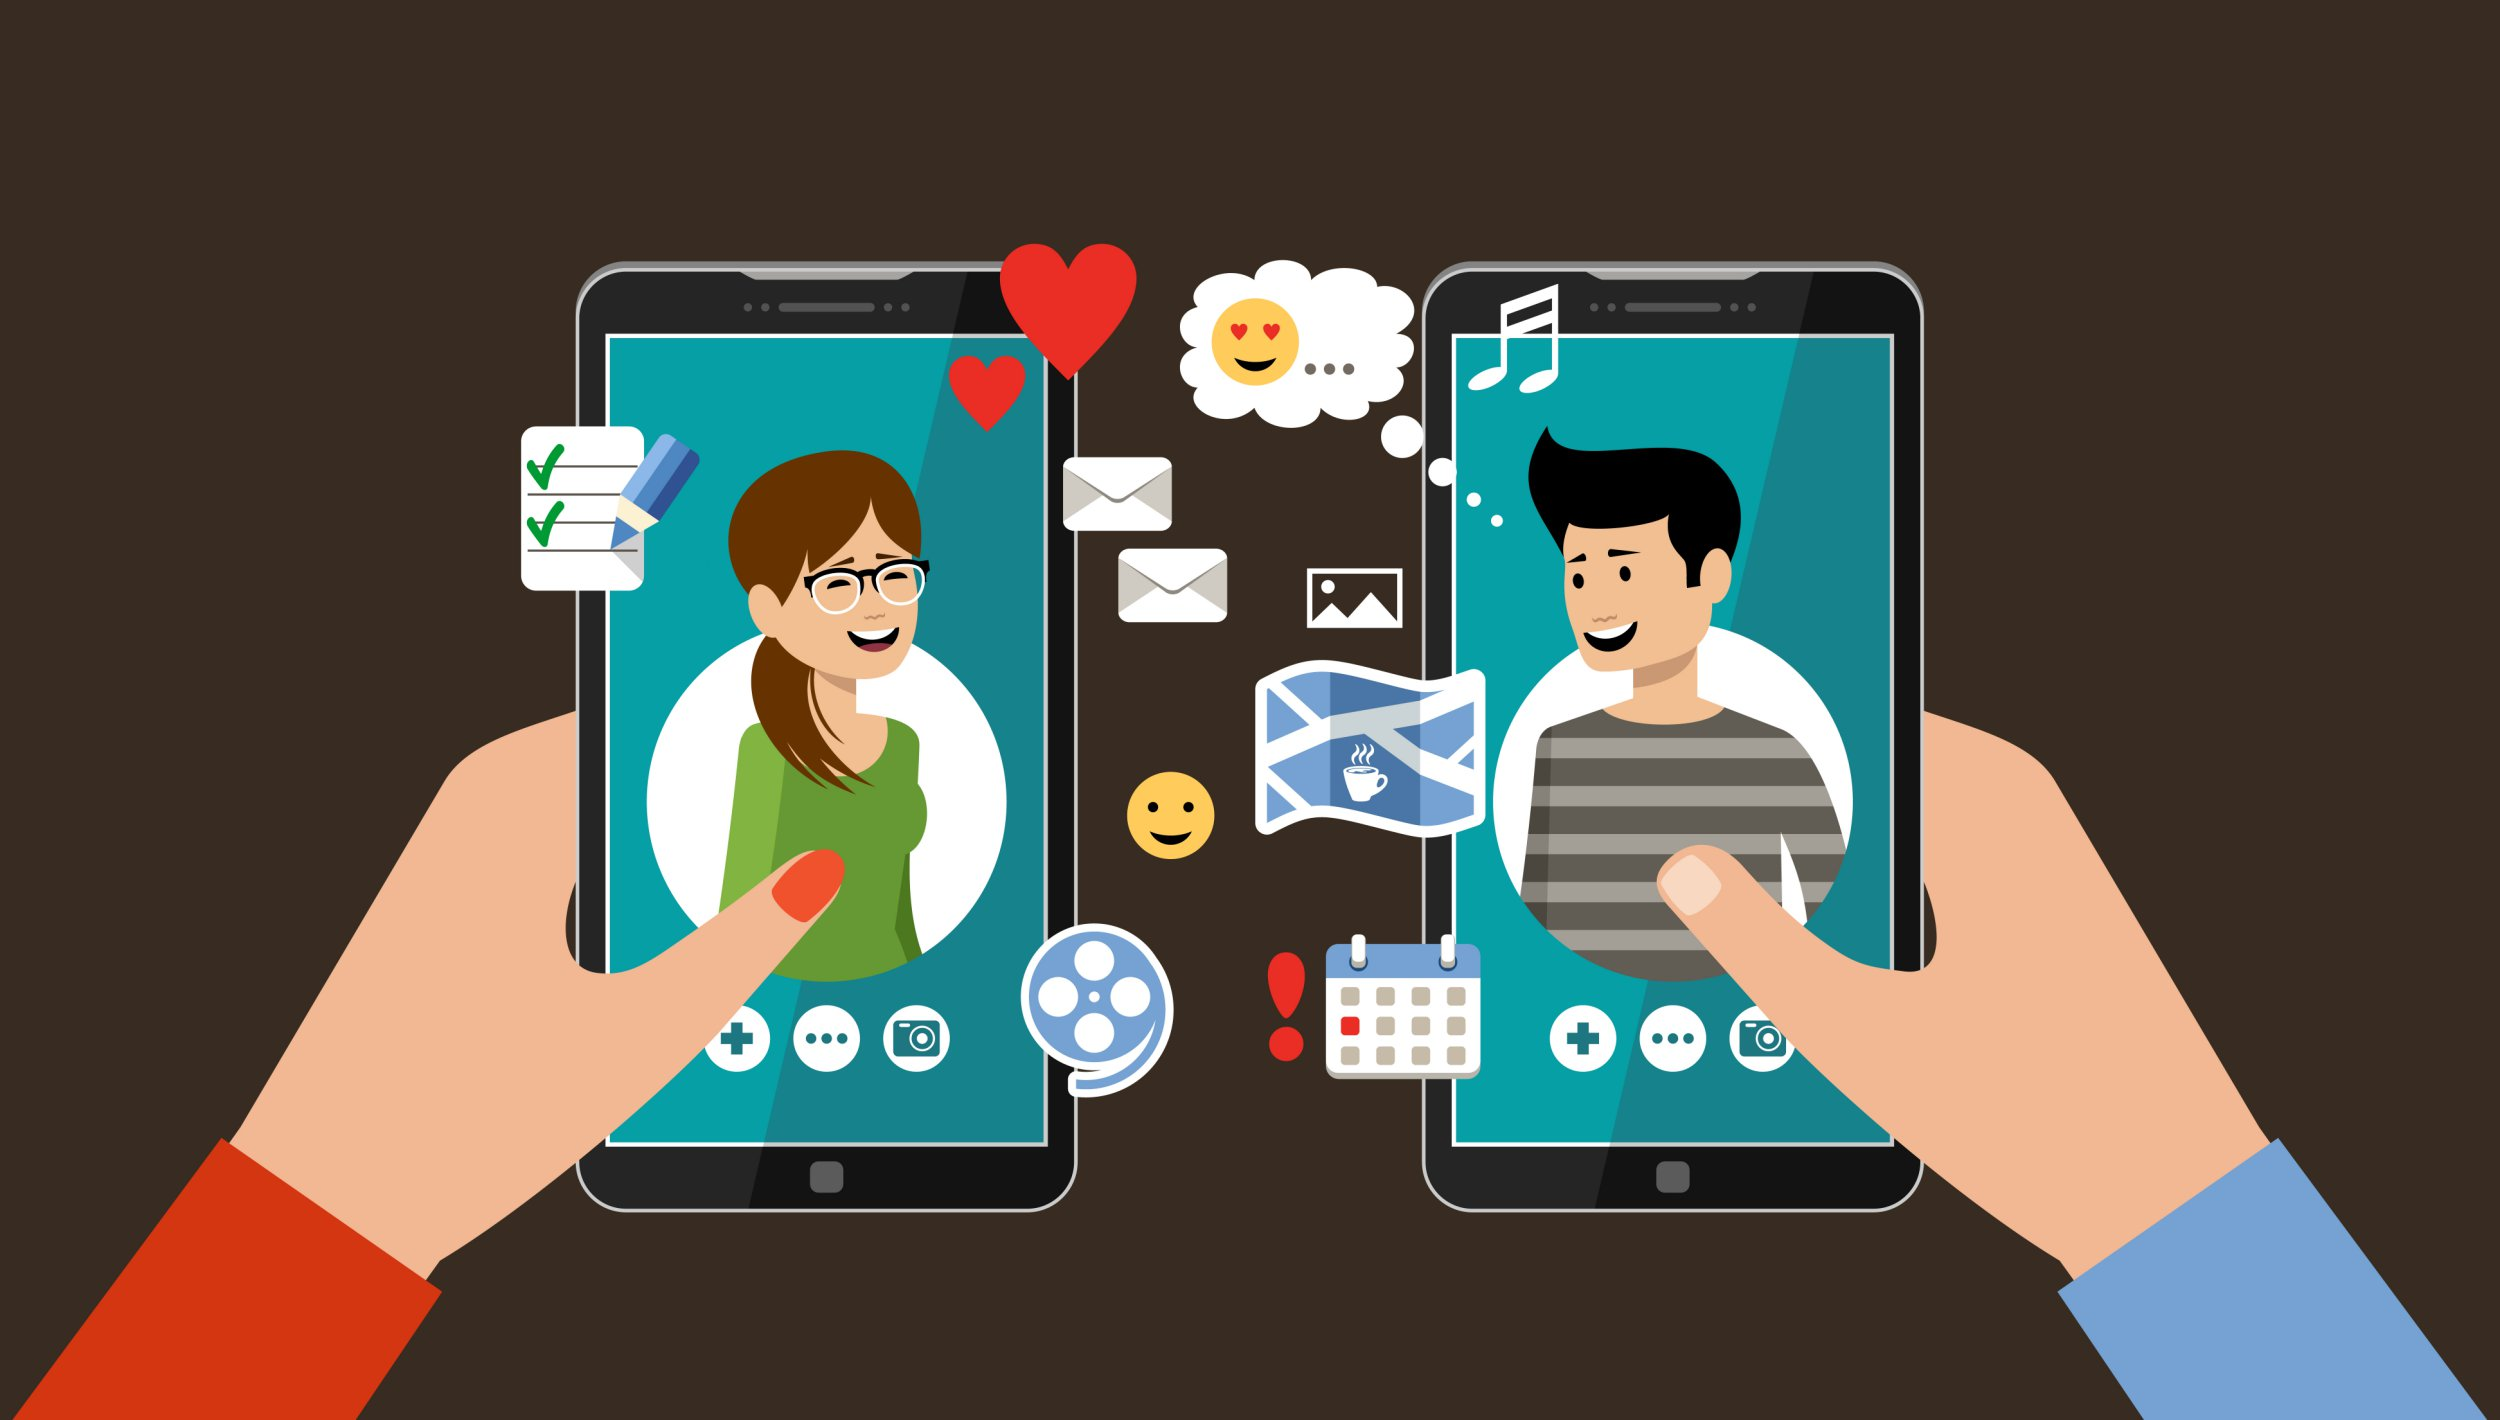 Socially - the social app that is perfect for introverts